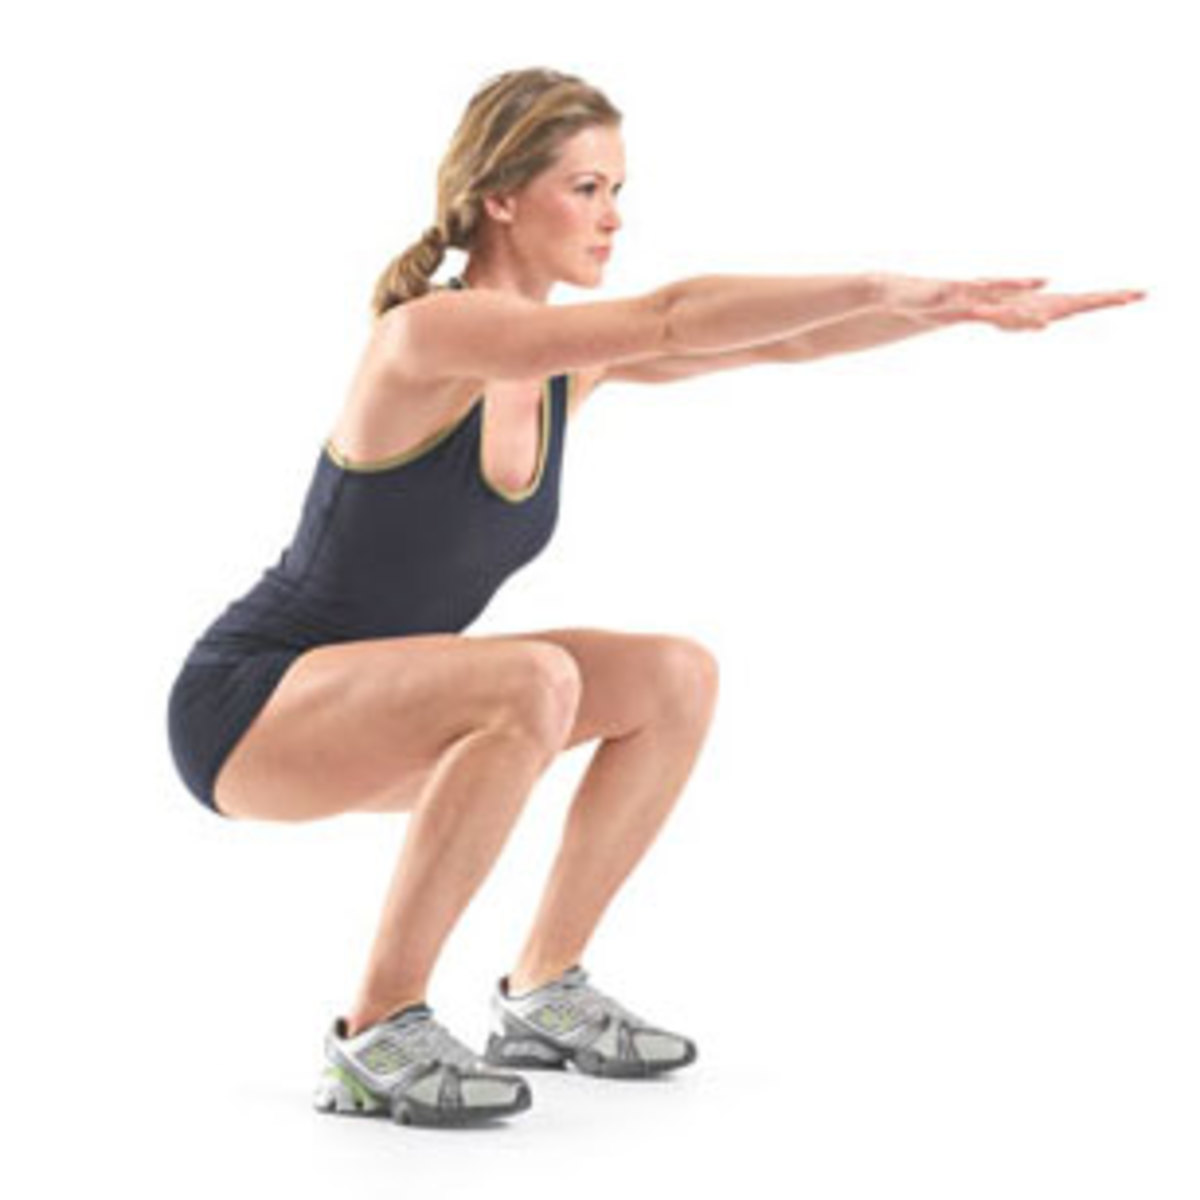 the squat exercise